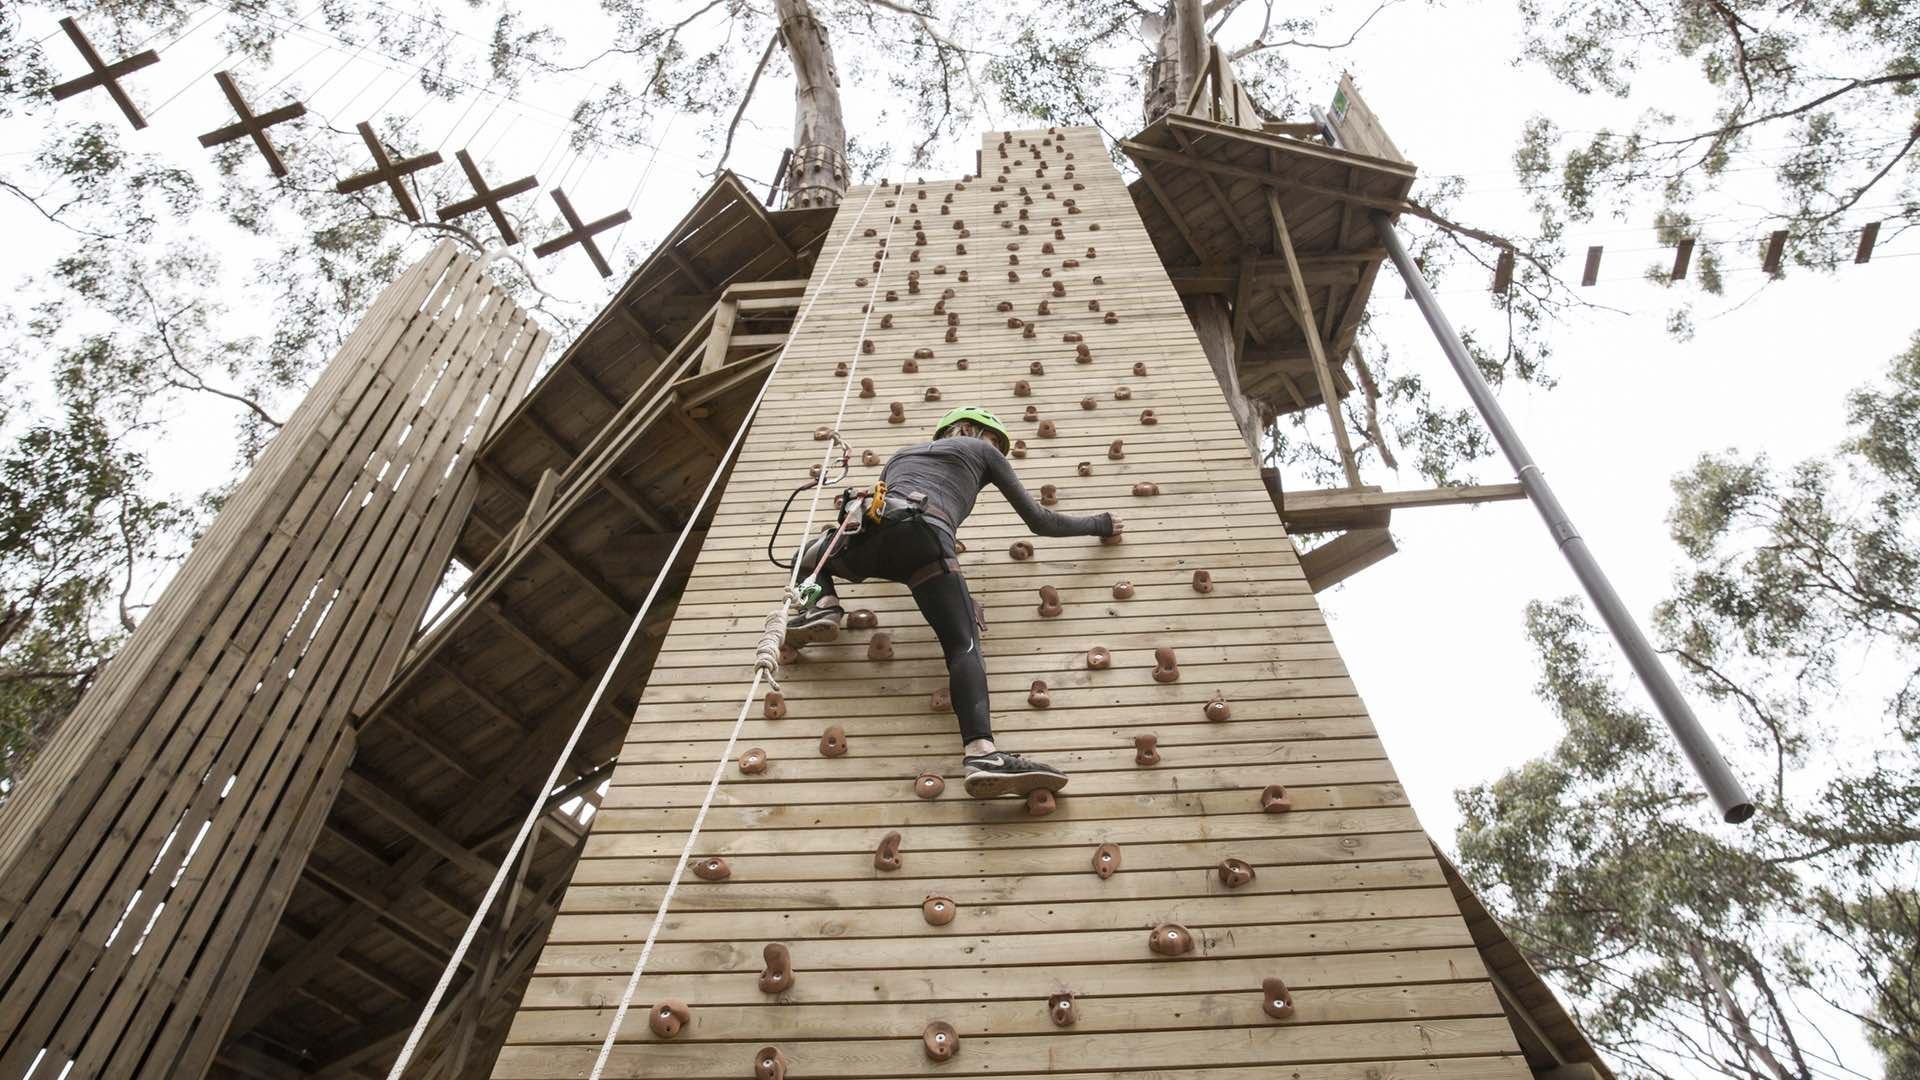 Victoria Has Just Scored an Epic New Off-the-Grid Aerial Adventure Park